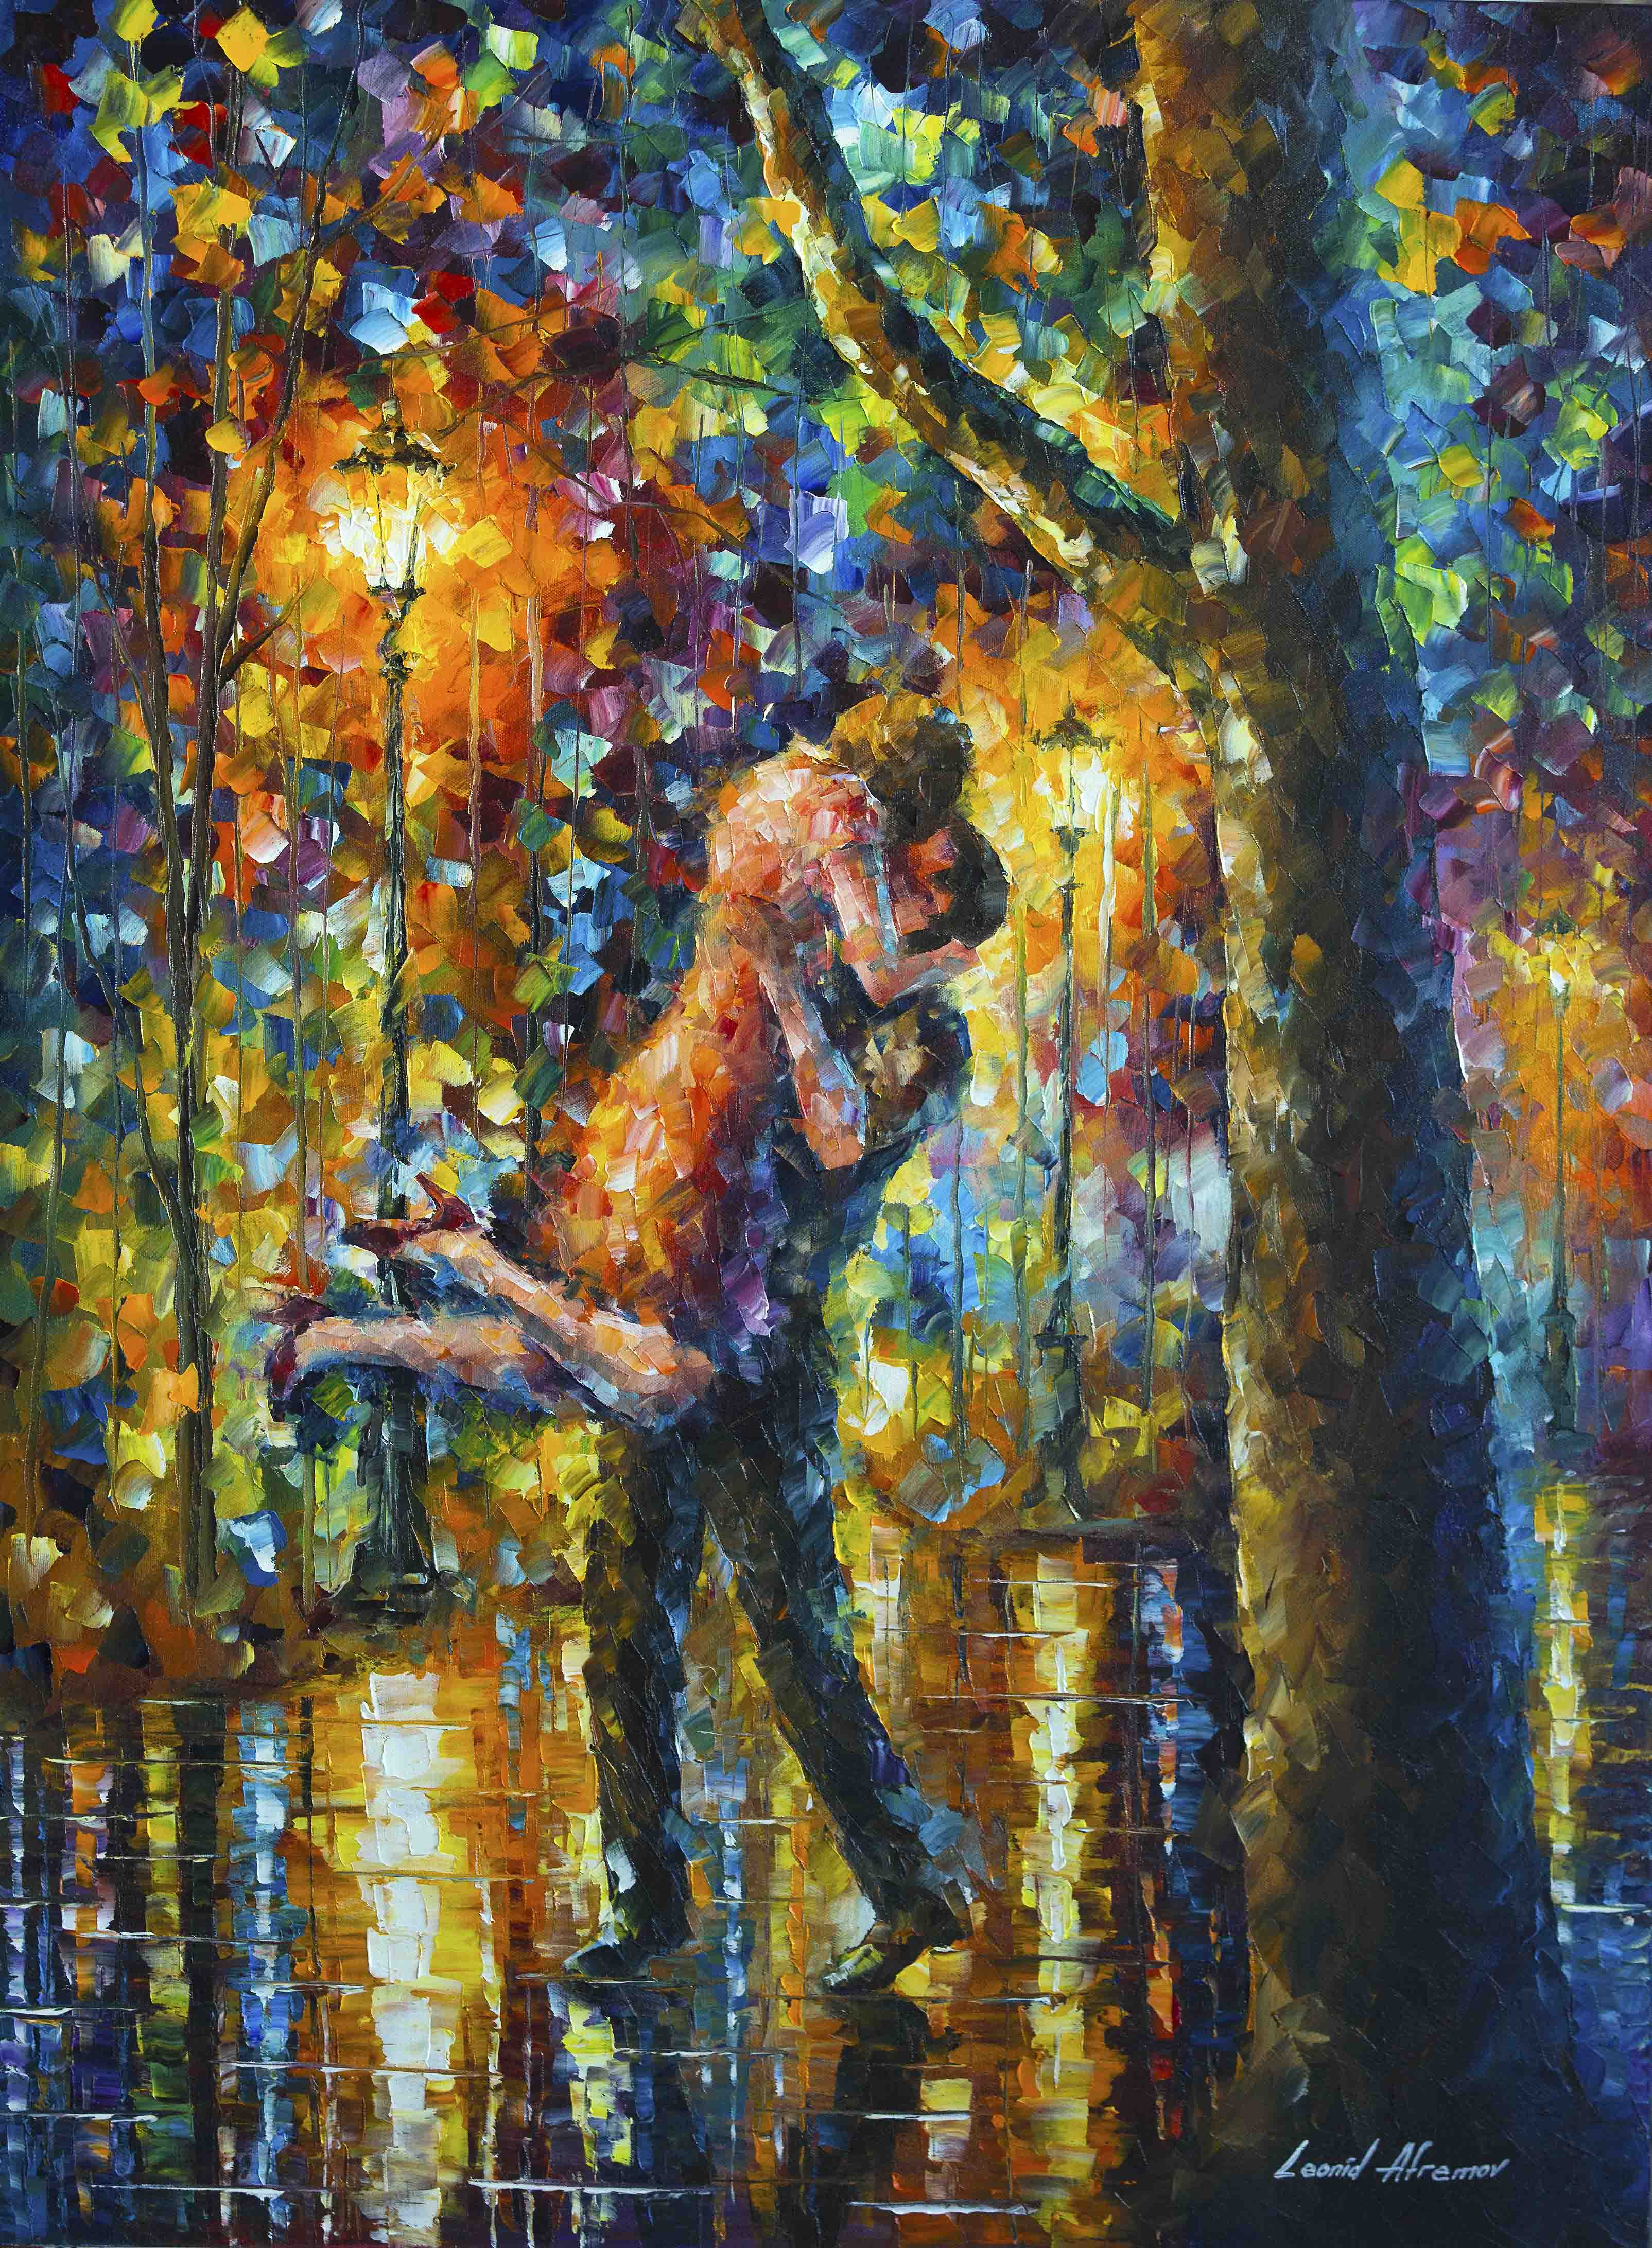 Long time ago - Original Oil Painting On Canvas By Leonid Afremov - 30x40""